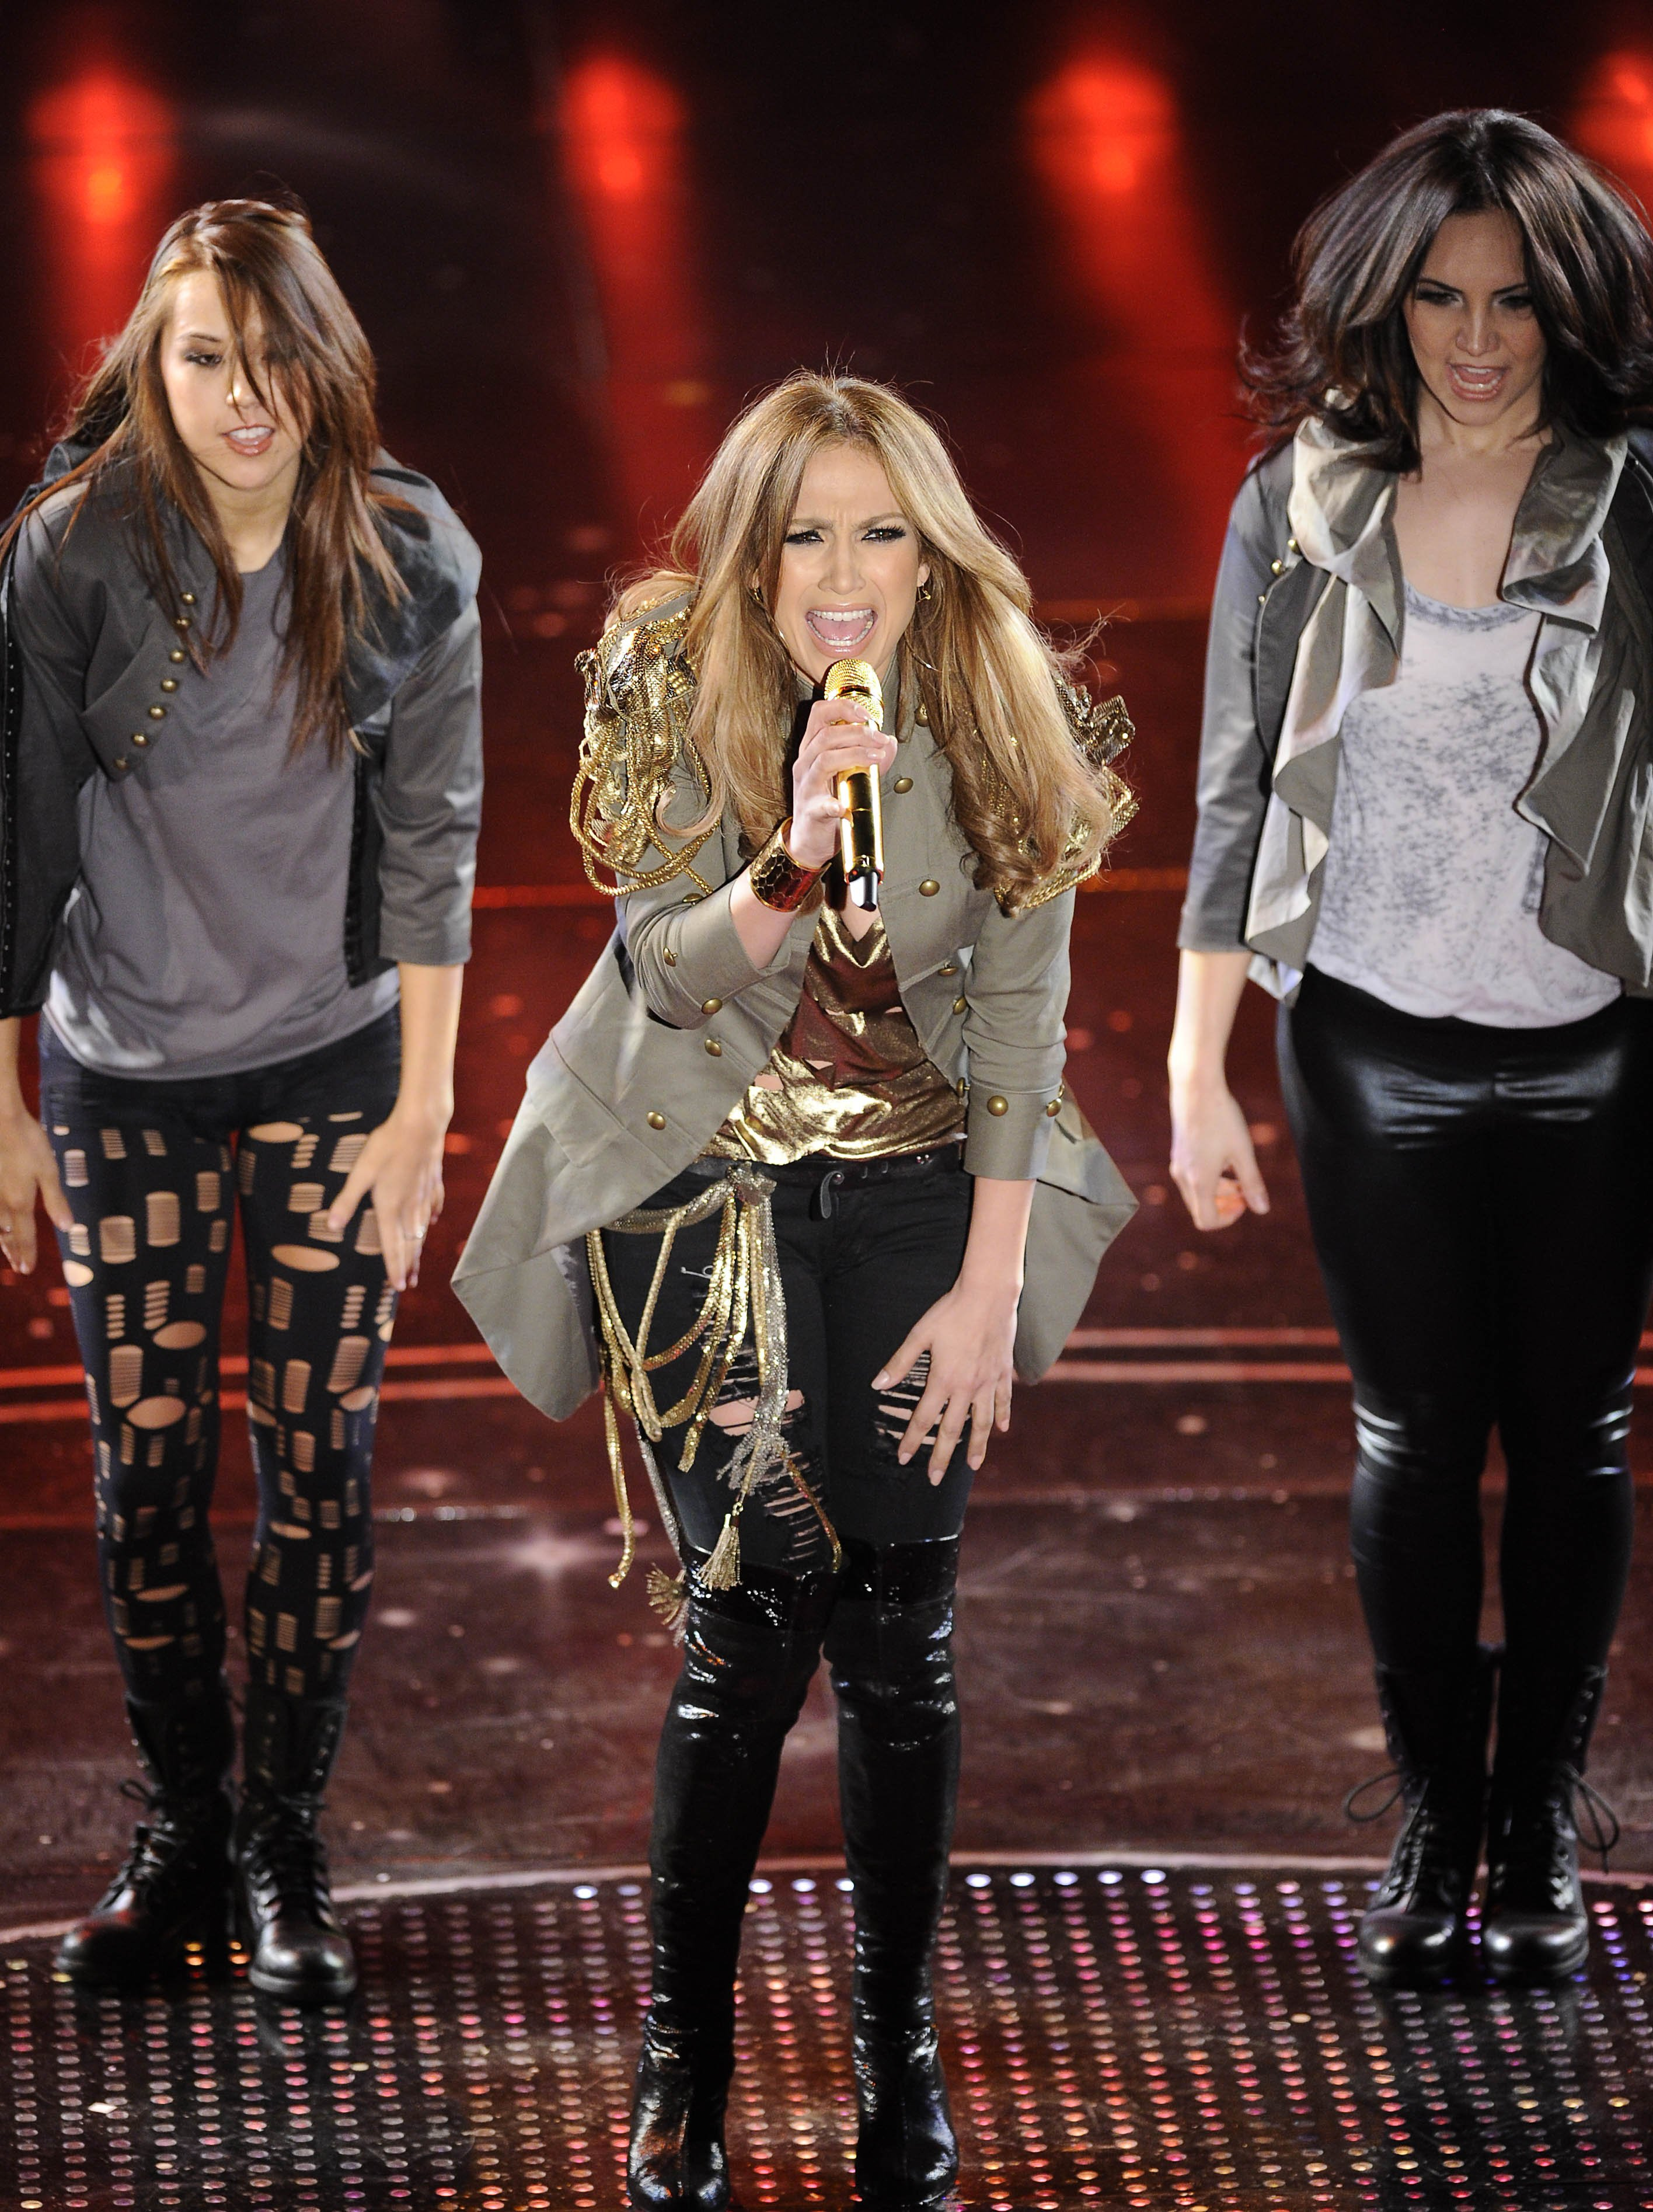 75099_Jennifer_Lopez_performs_during_the_Festival_di_Sanremo_Italian_song_contest-5_122_648lo.jpg